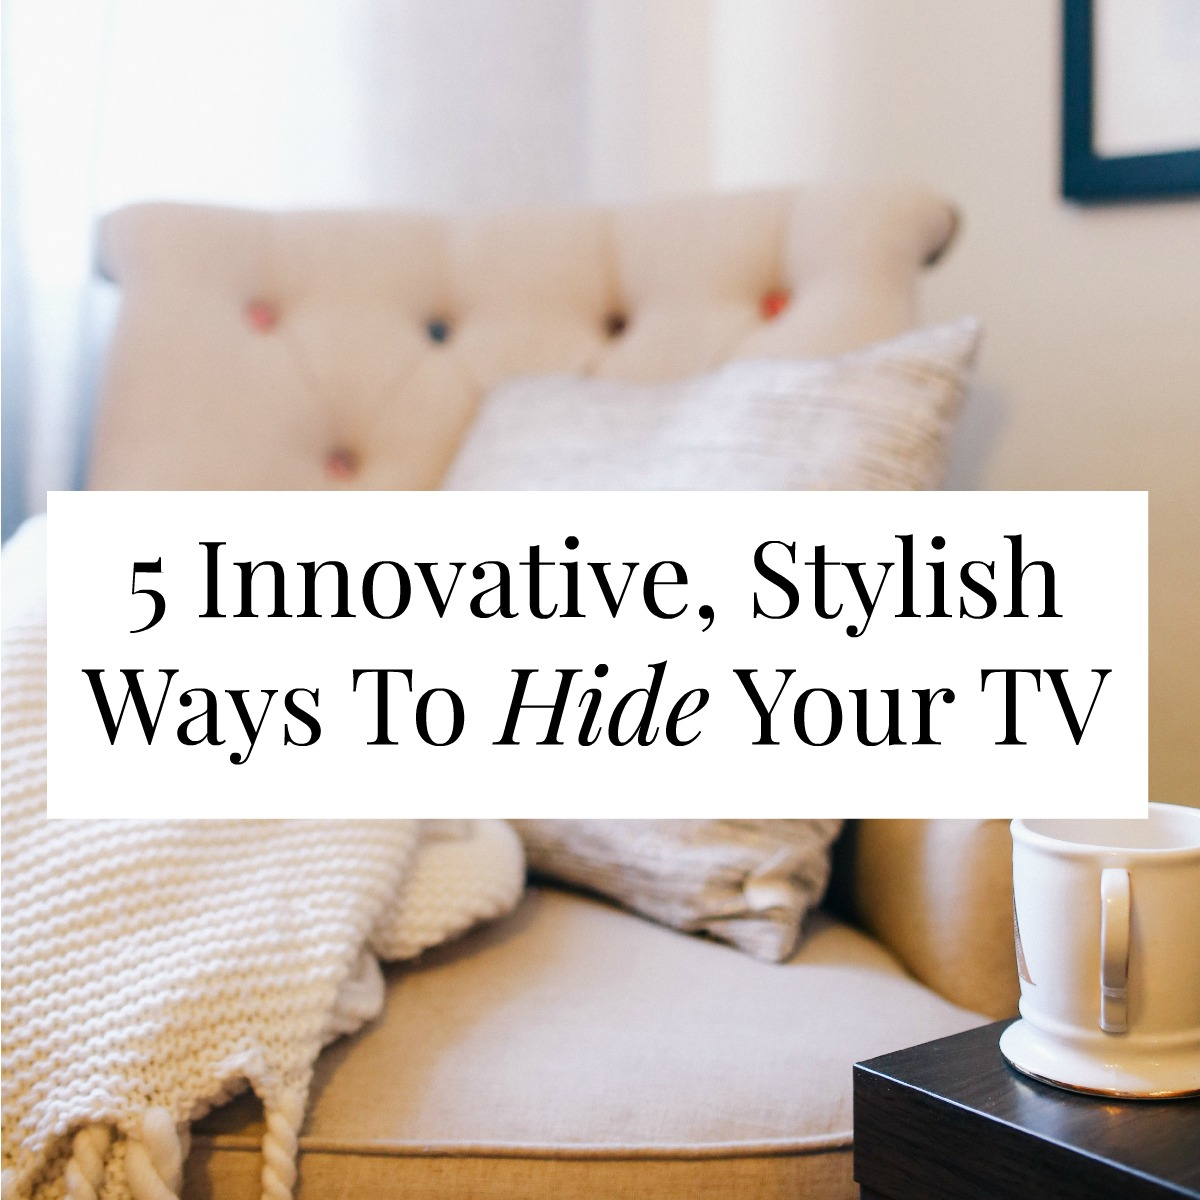 5 Innovative Stylish Ways To Hide Your TV